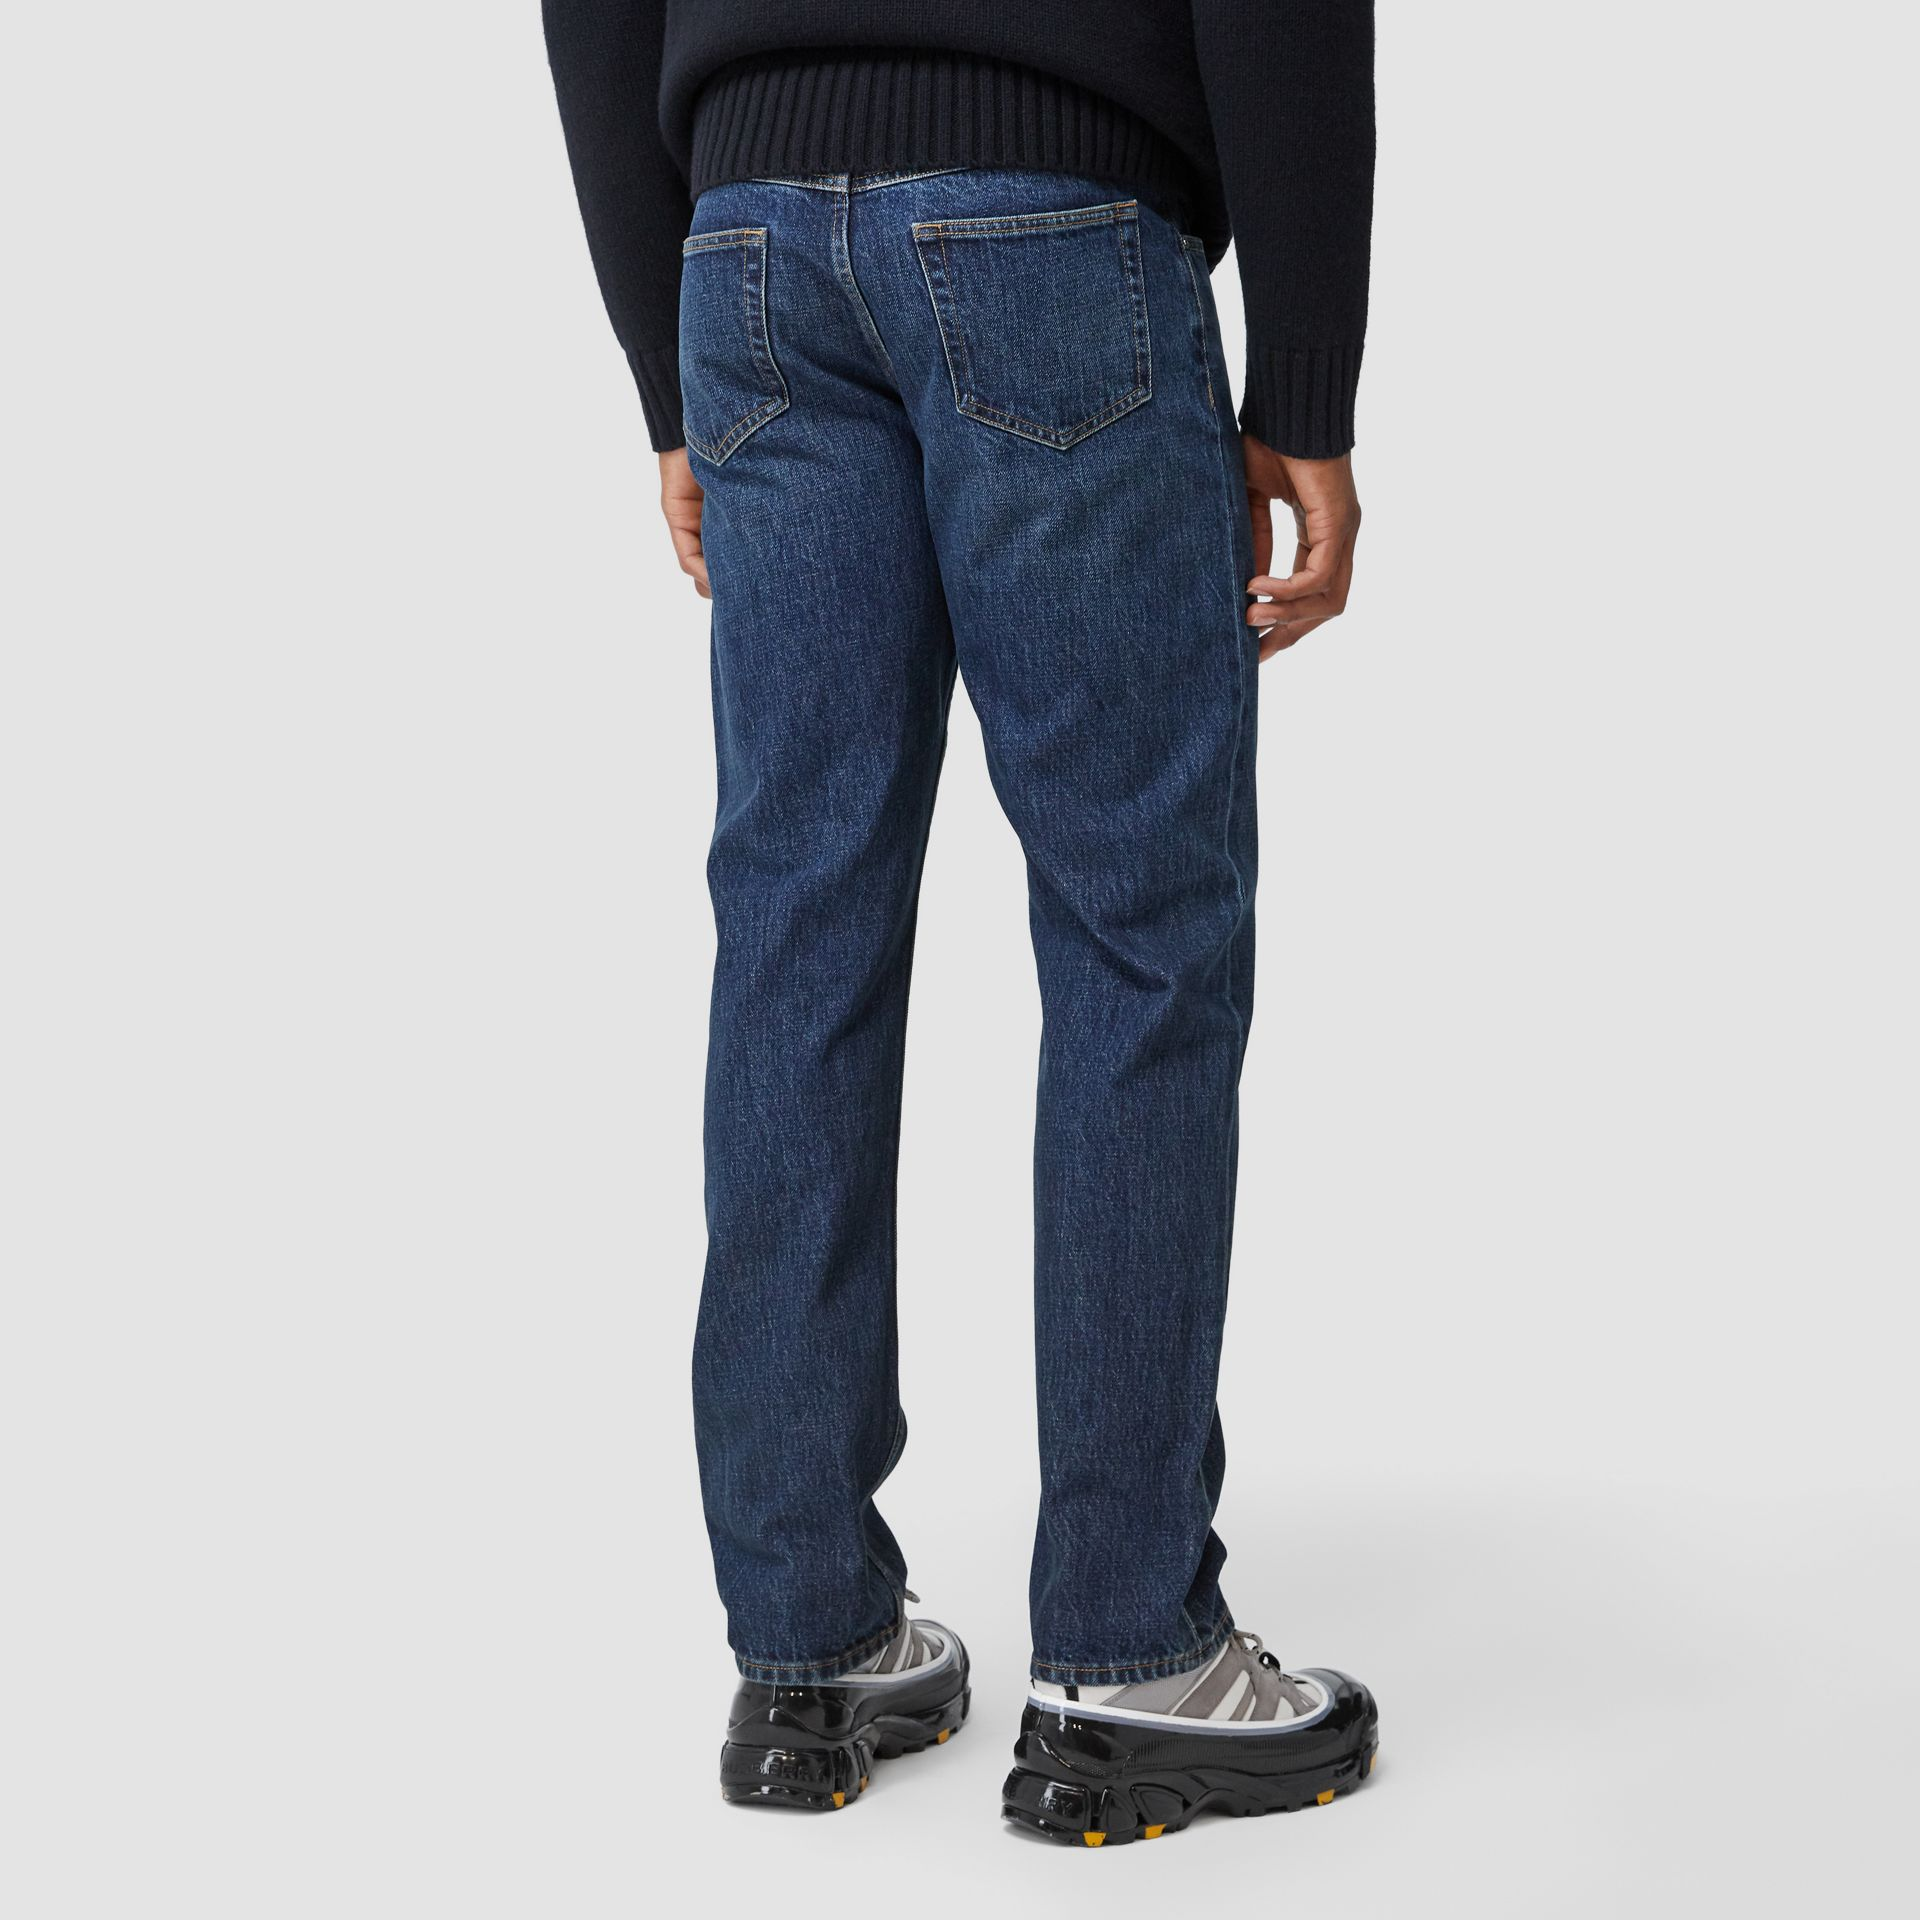 Straight Fit Washed Jeans in Dark Indigo - Men | Burberry - gallery image 2